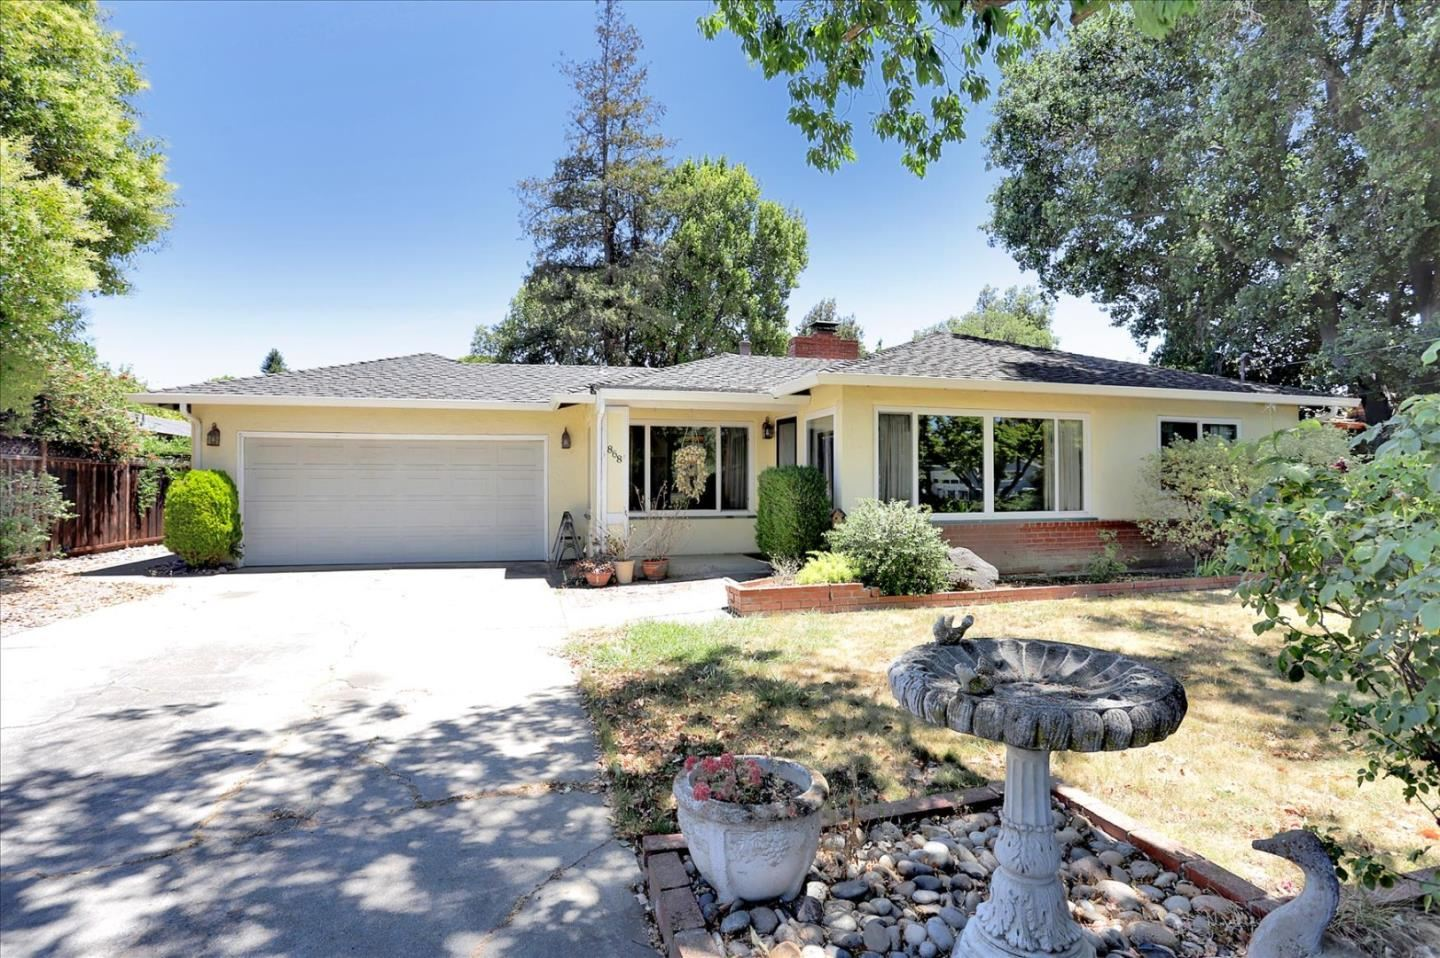 Photo for 868 Sweetbriar Drive, CAMPBELL, CA 95008 (MLS # ML81847083)